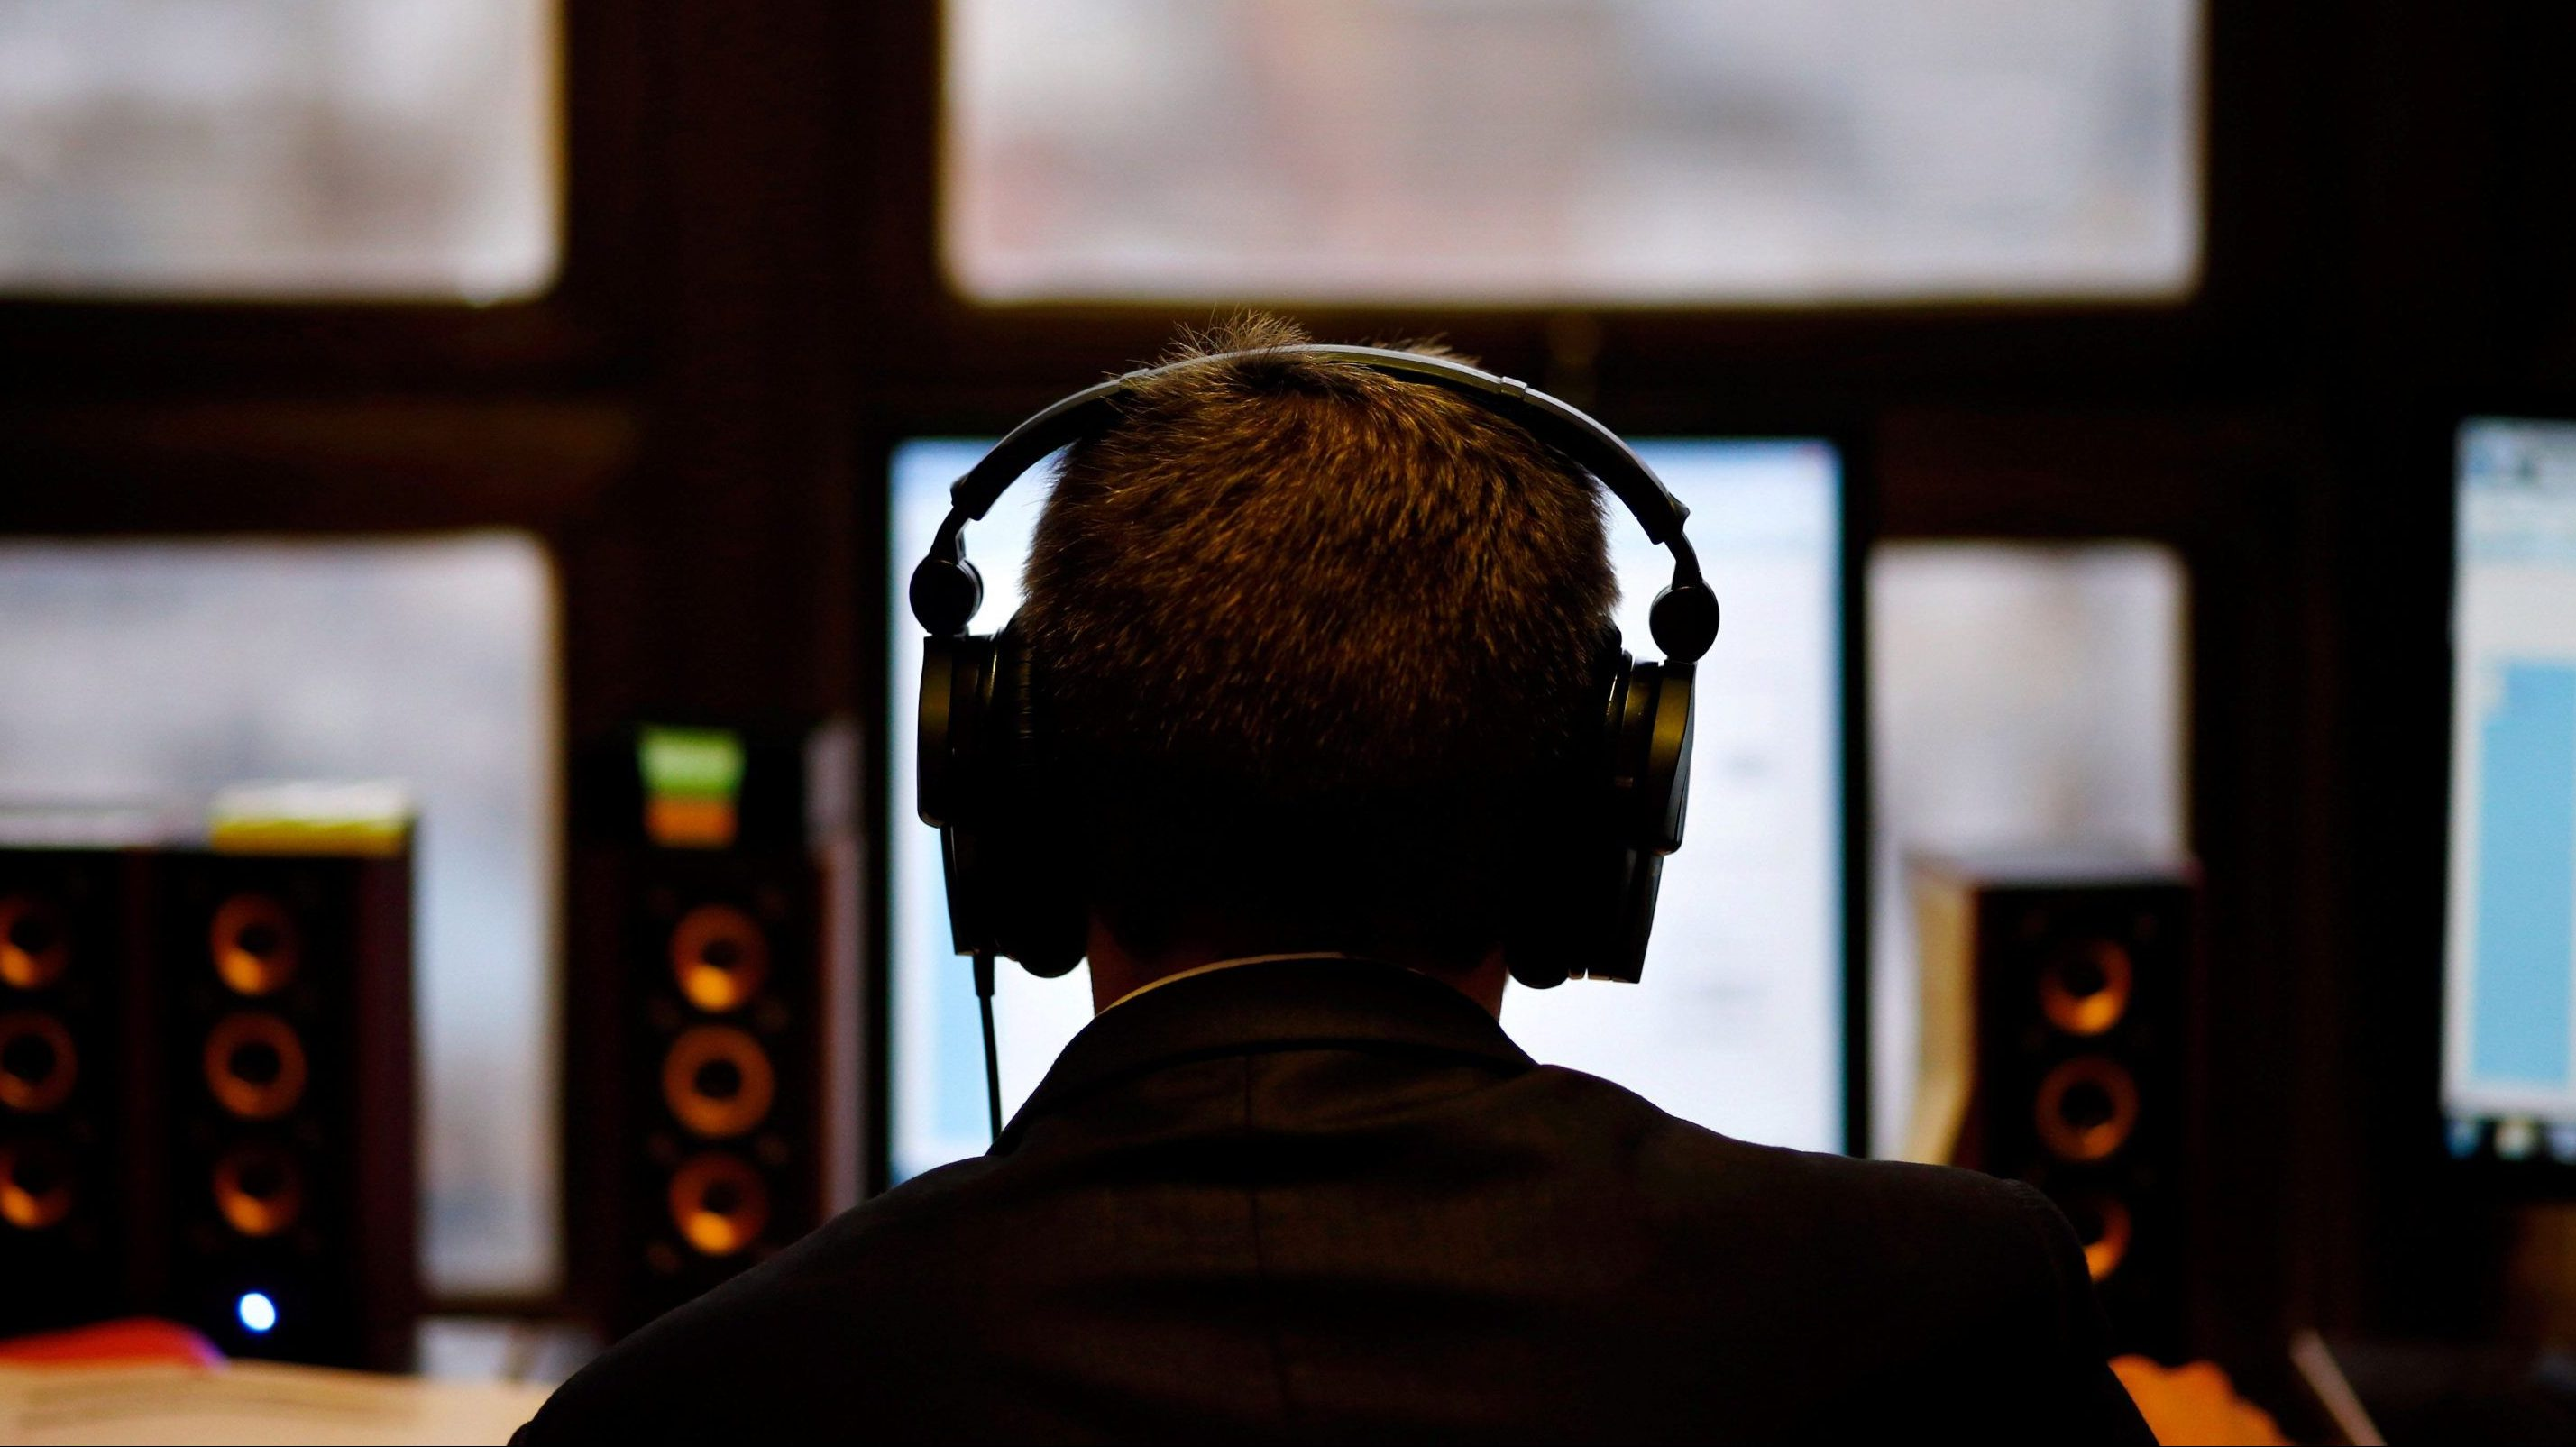 Listening to music at work — Quartz Daily Obsession